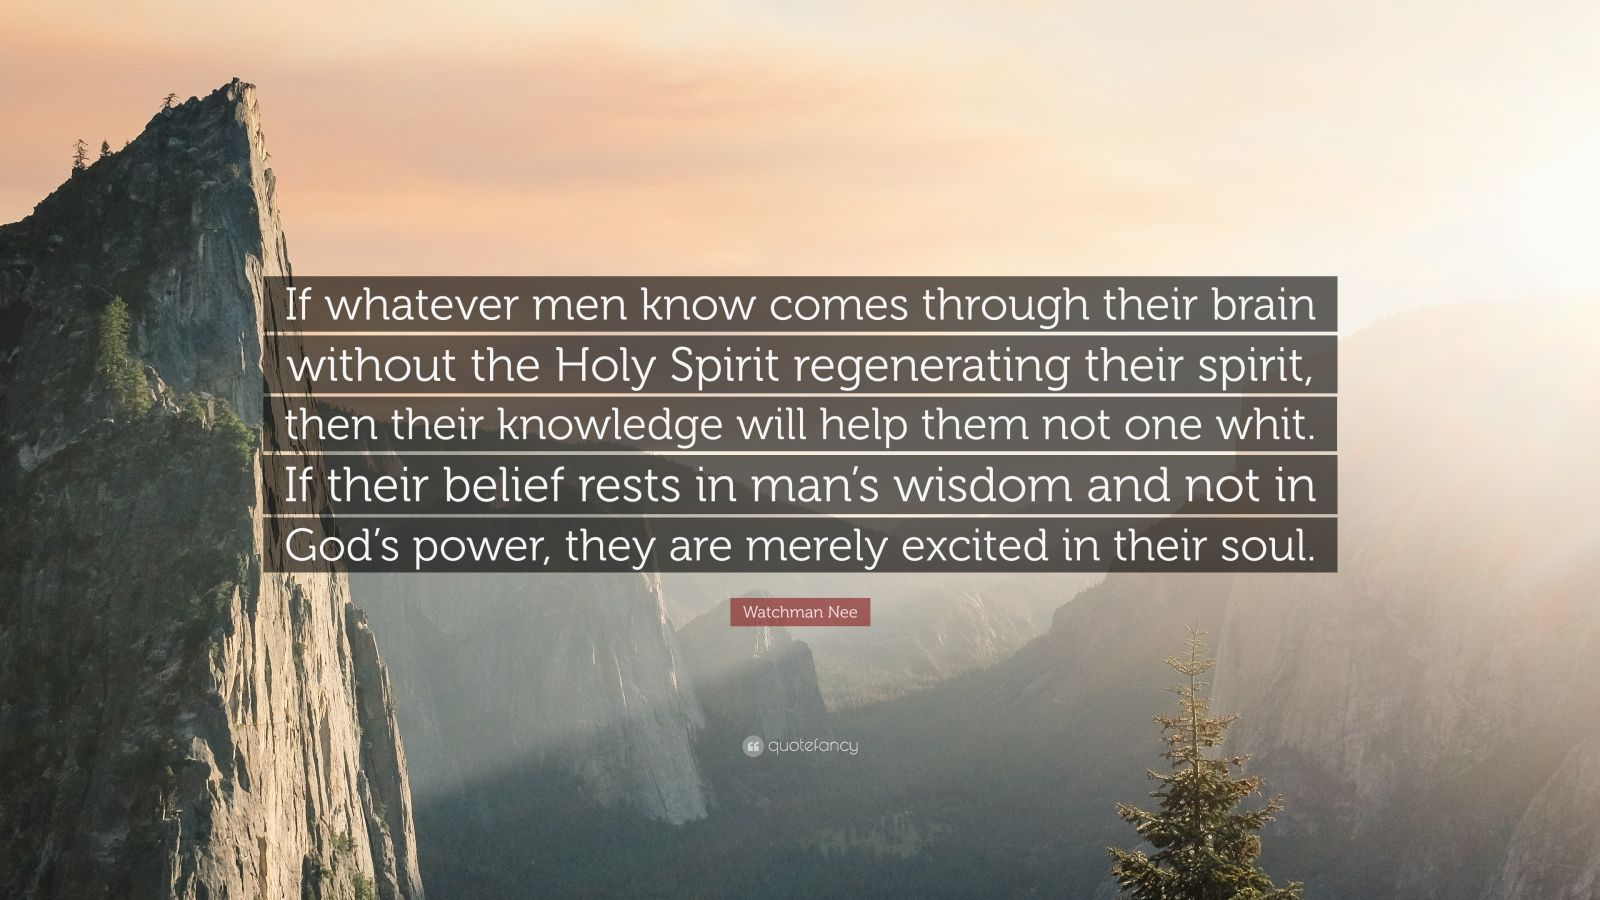 """Watchman Nee Quote: """"If whatever men know comes through their brain without the Holy Spirit regenerating their spirit, then their knowledge will help them not one whit. If their belief rests in man's wisdom and not in God's power, they are merely excited in their soul."""""""